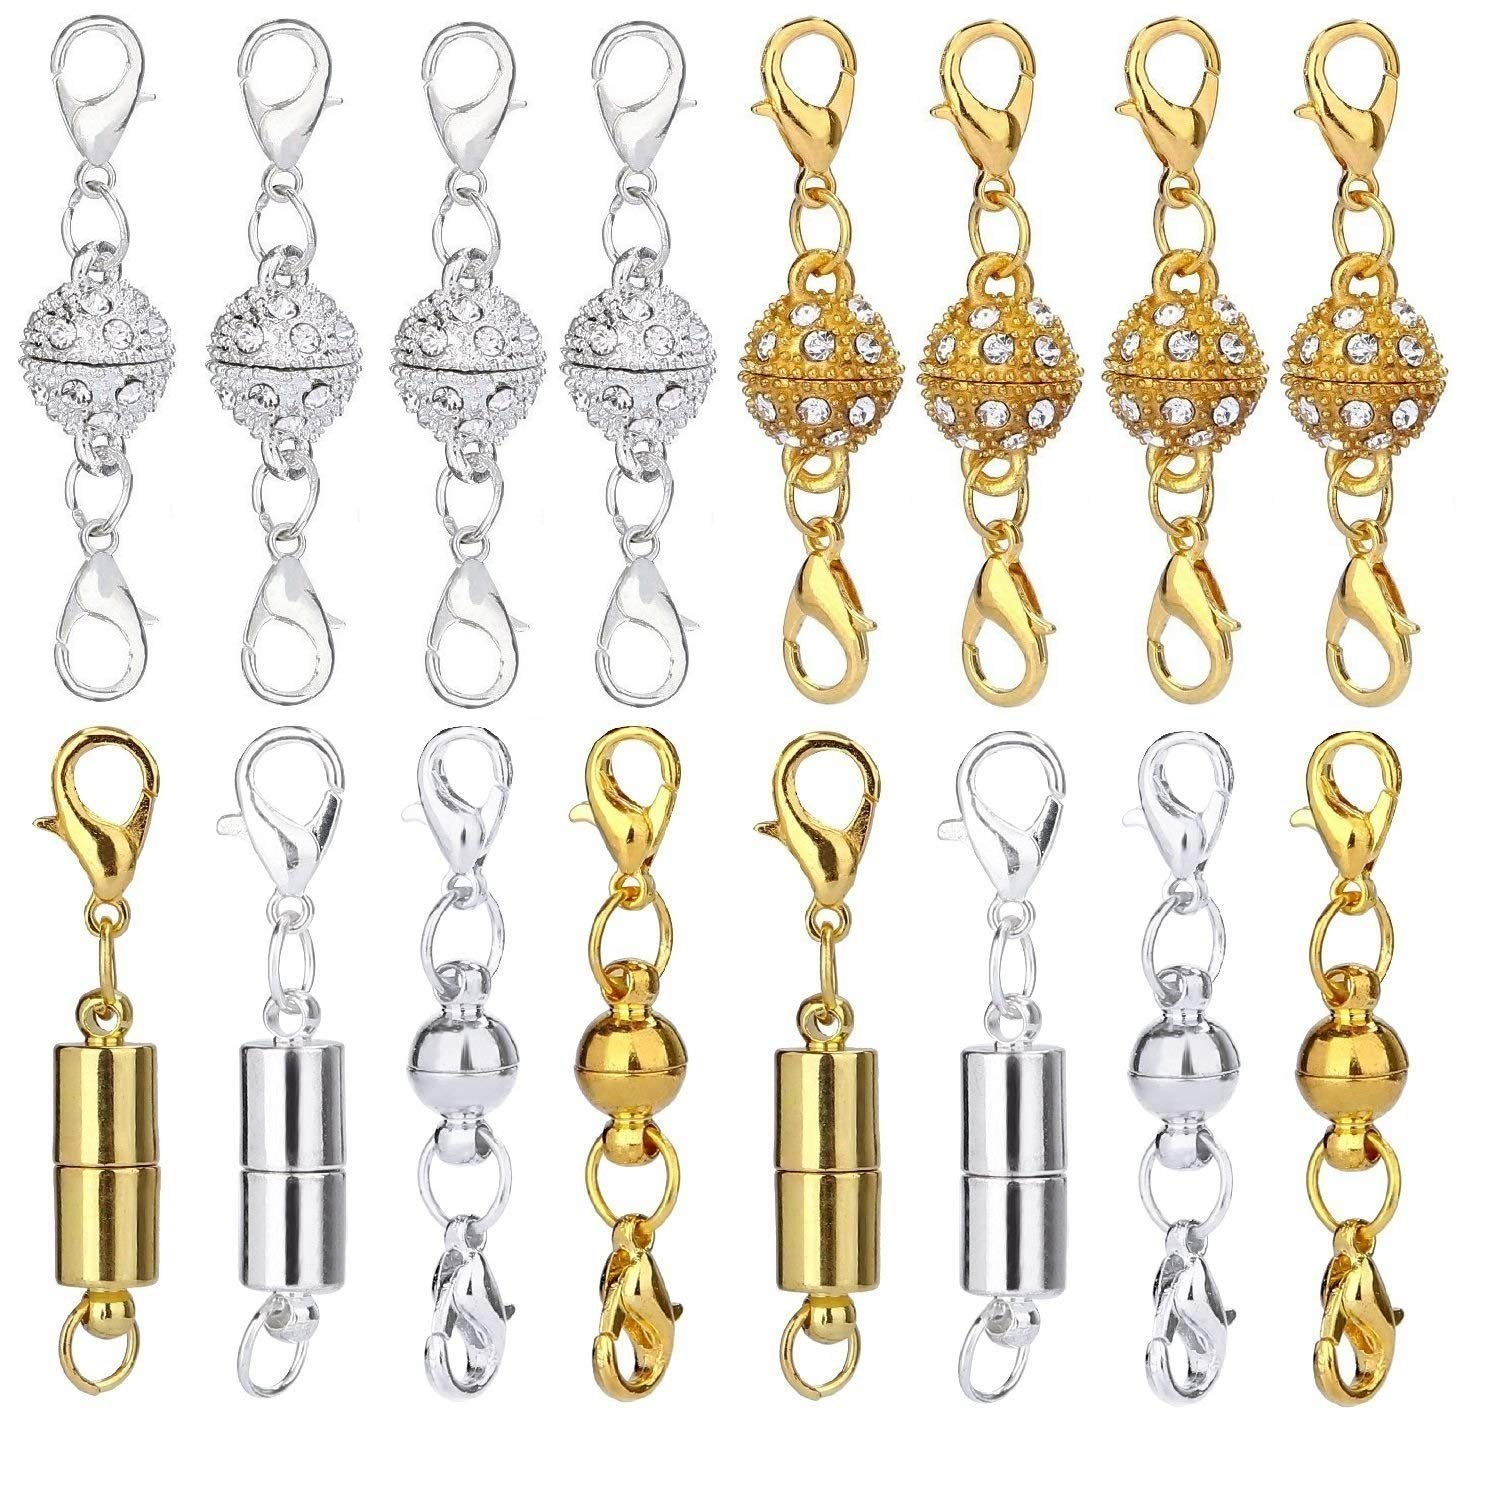 Aiskaer 16 Pcs Magnetic Lobster Clasps for Jewelry Necklace Bracelet Rhinestone Ball Style Cylindrical and Ball Tone Lobster Clasp (16PCS) by Aiskaer